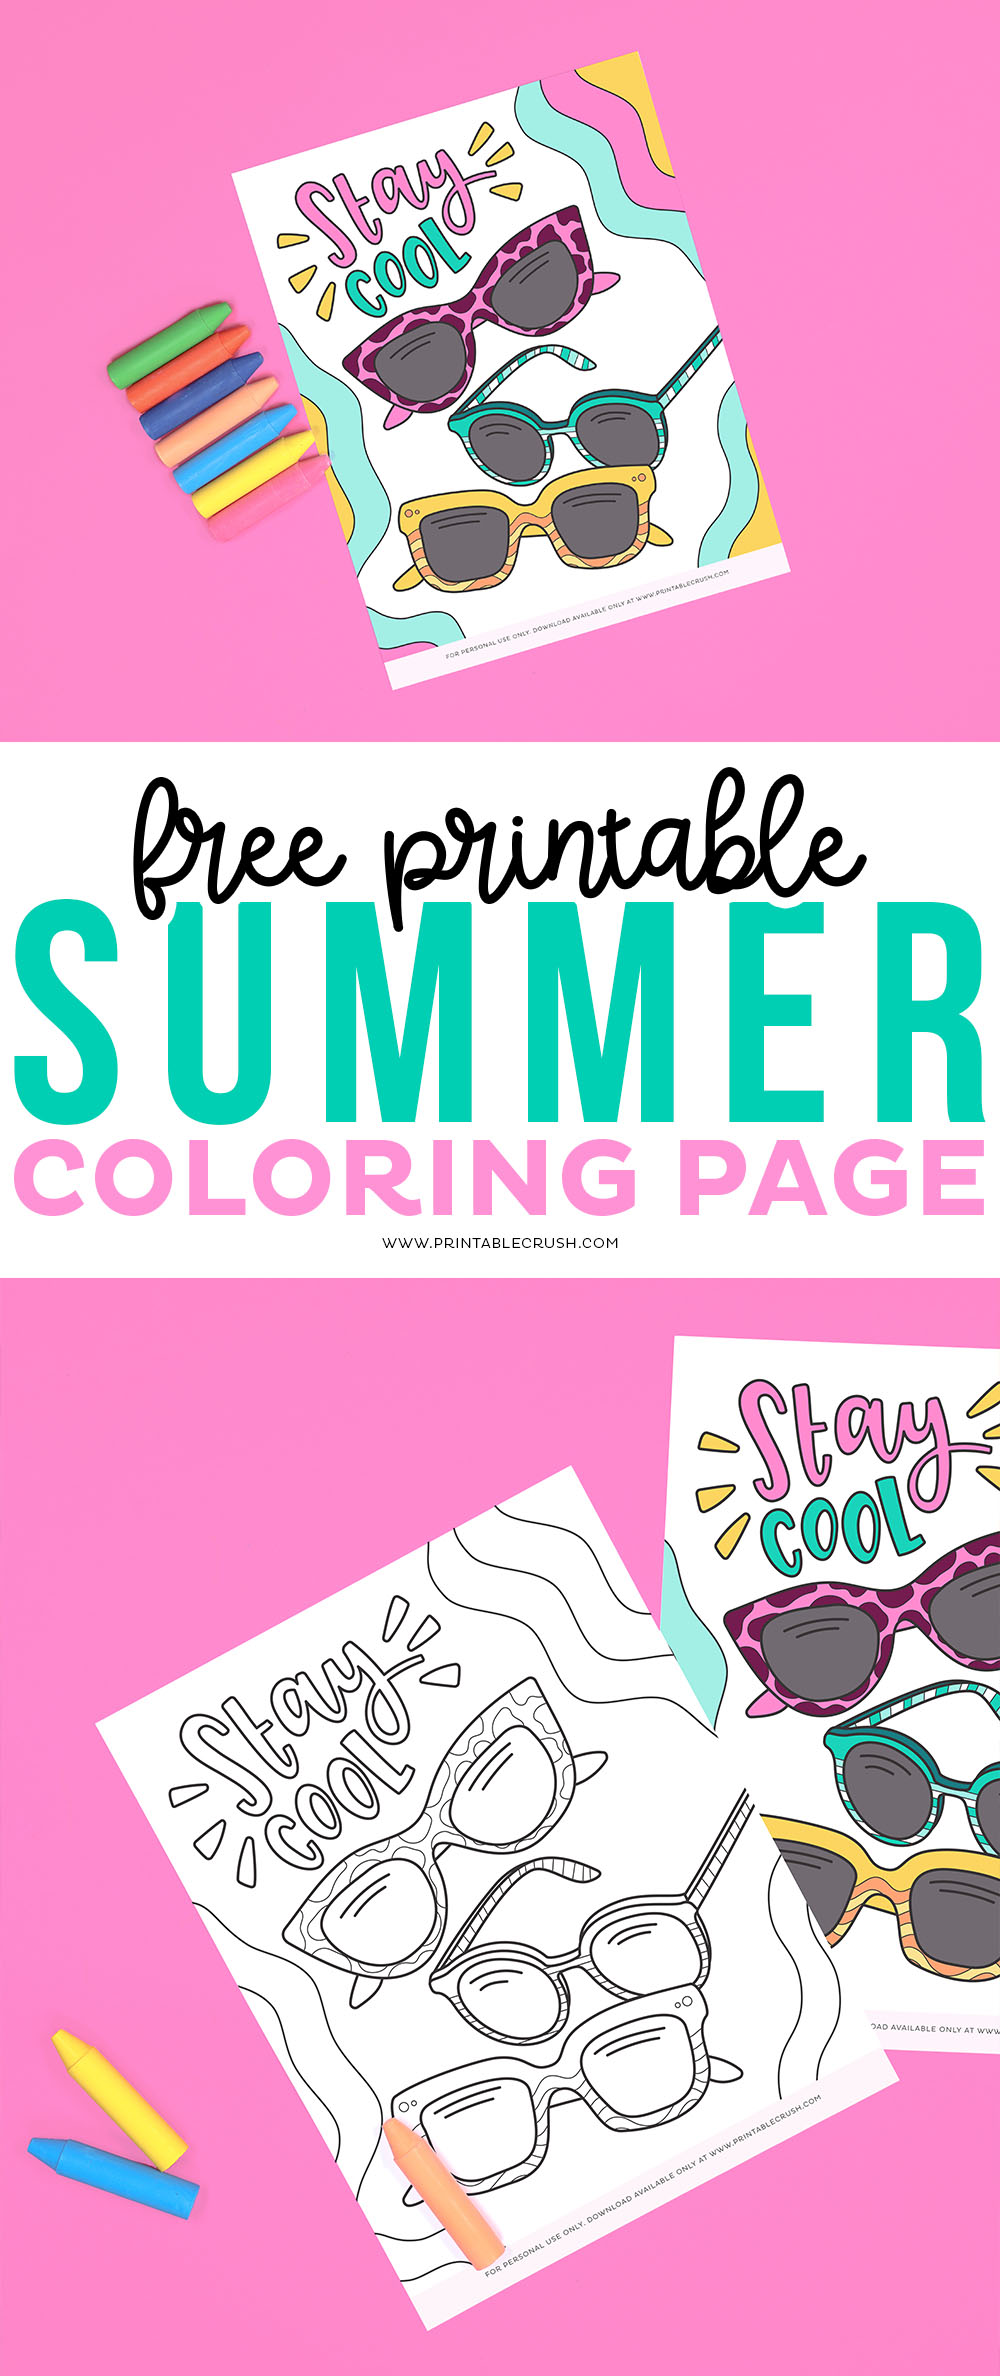 Free Sunglasses Coloring Page - Summer Coloring Page - Coloring Page for Summer - Printable Crush